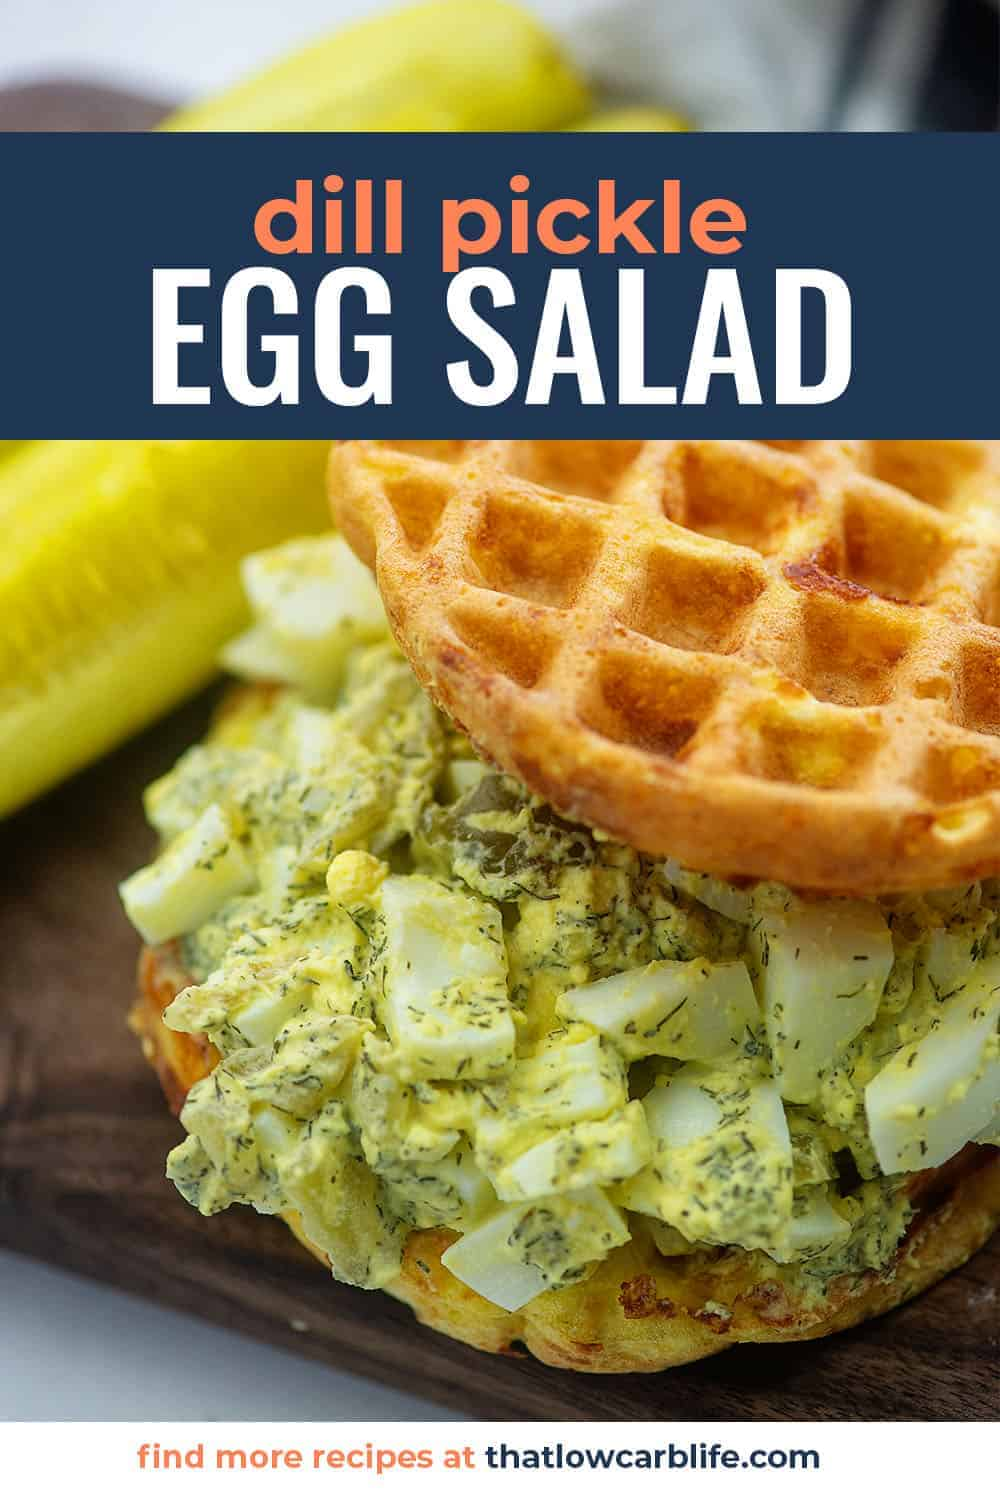 Dill Pickle Egg Salad